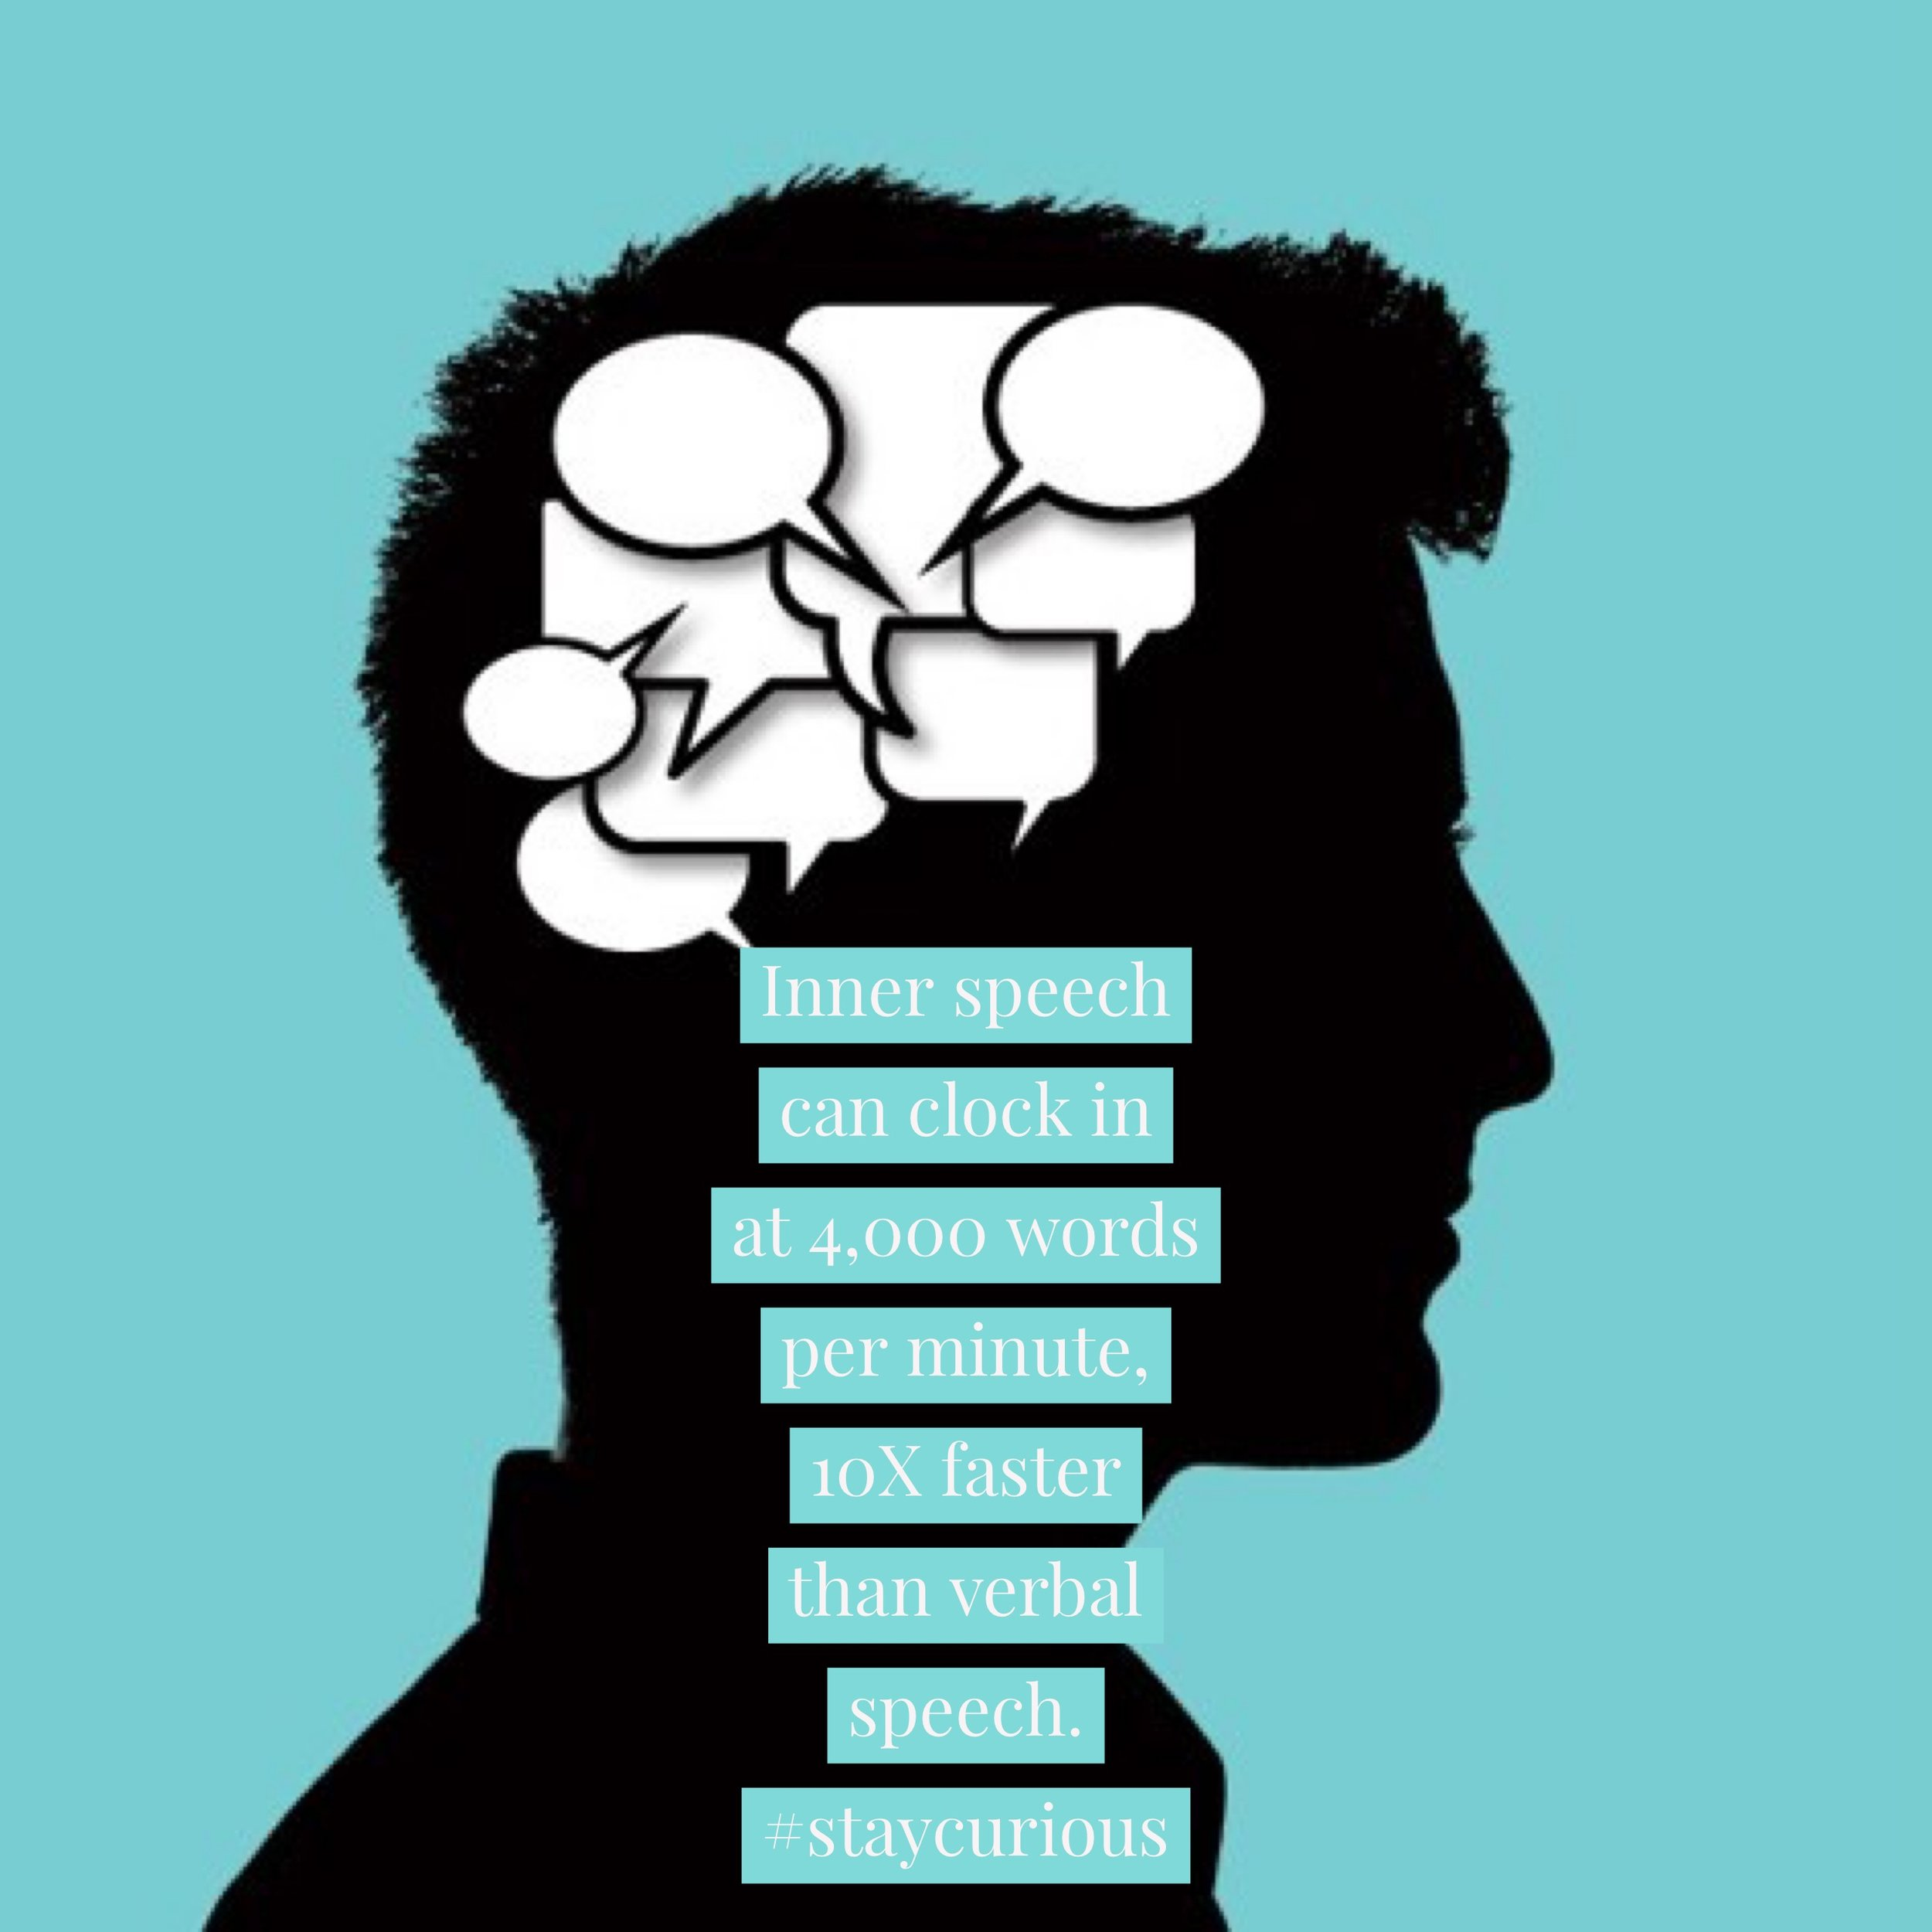 Inner speech can clock in at 4,000 words per minute, 10X faster than